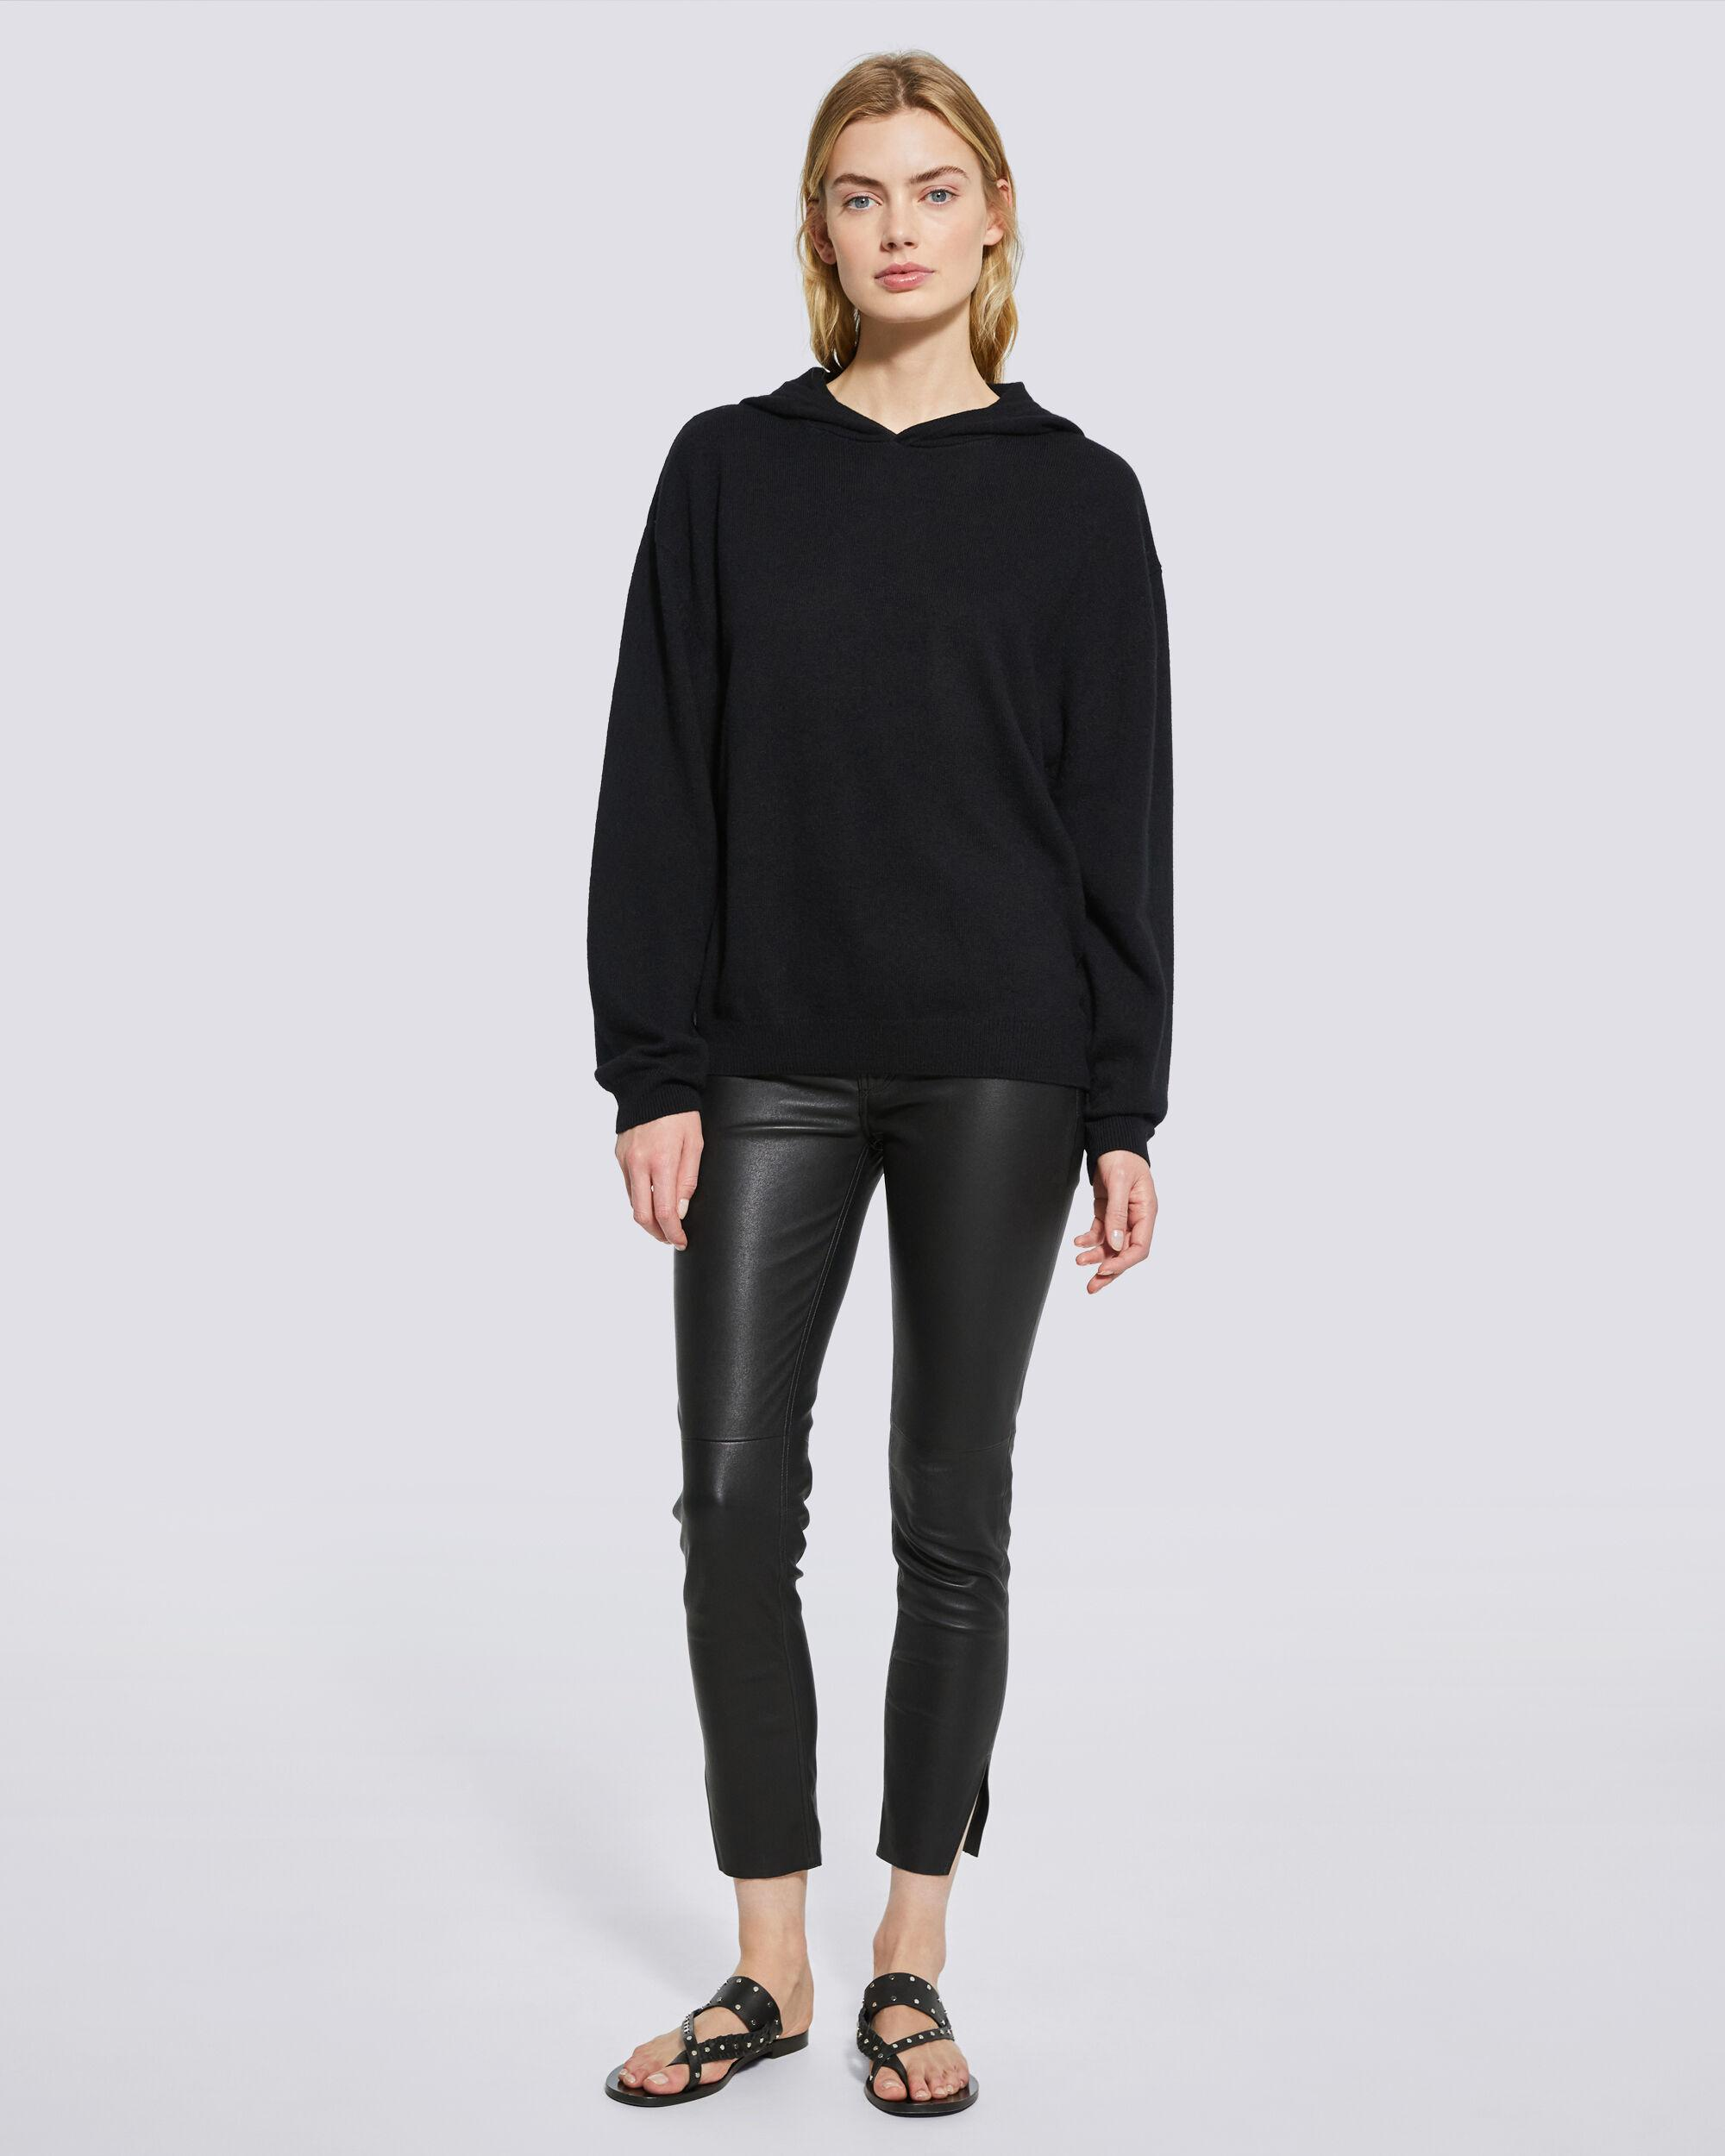 TIAGO COTTON AND CASHMERE HOODED SWEATSHIRT